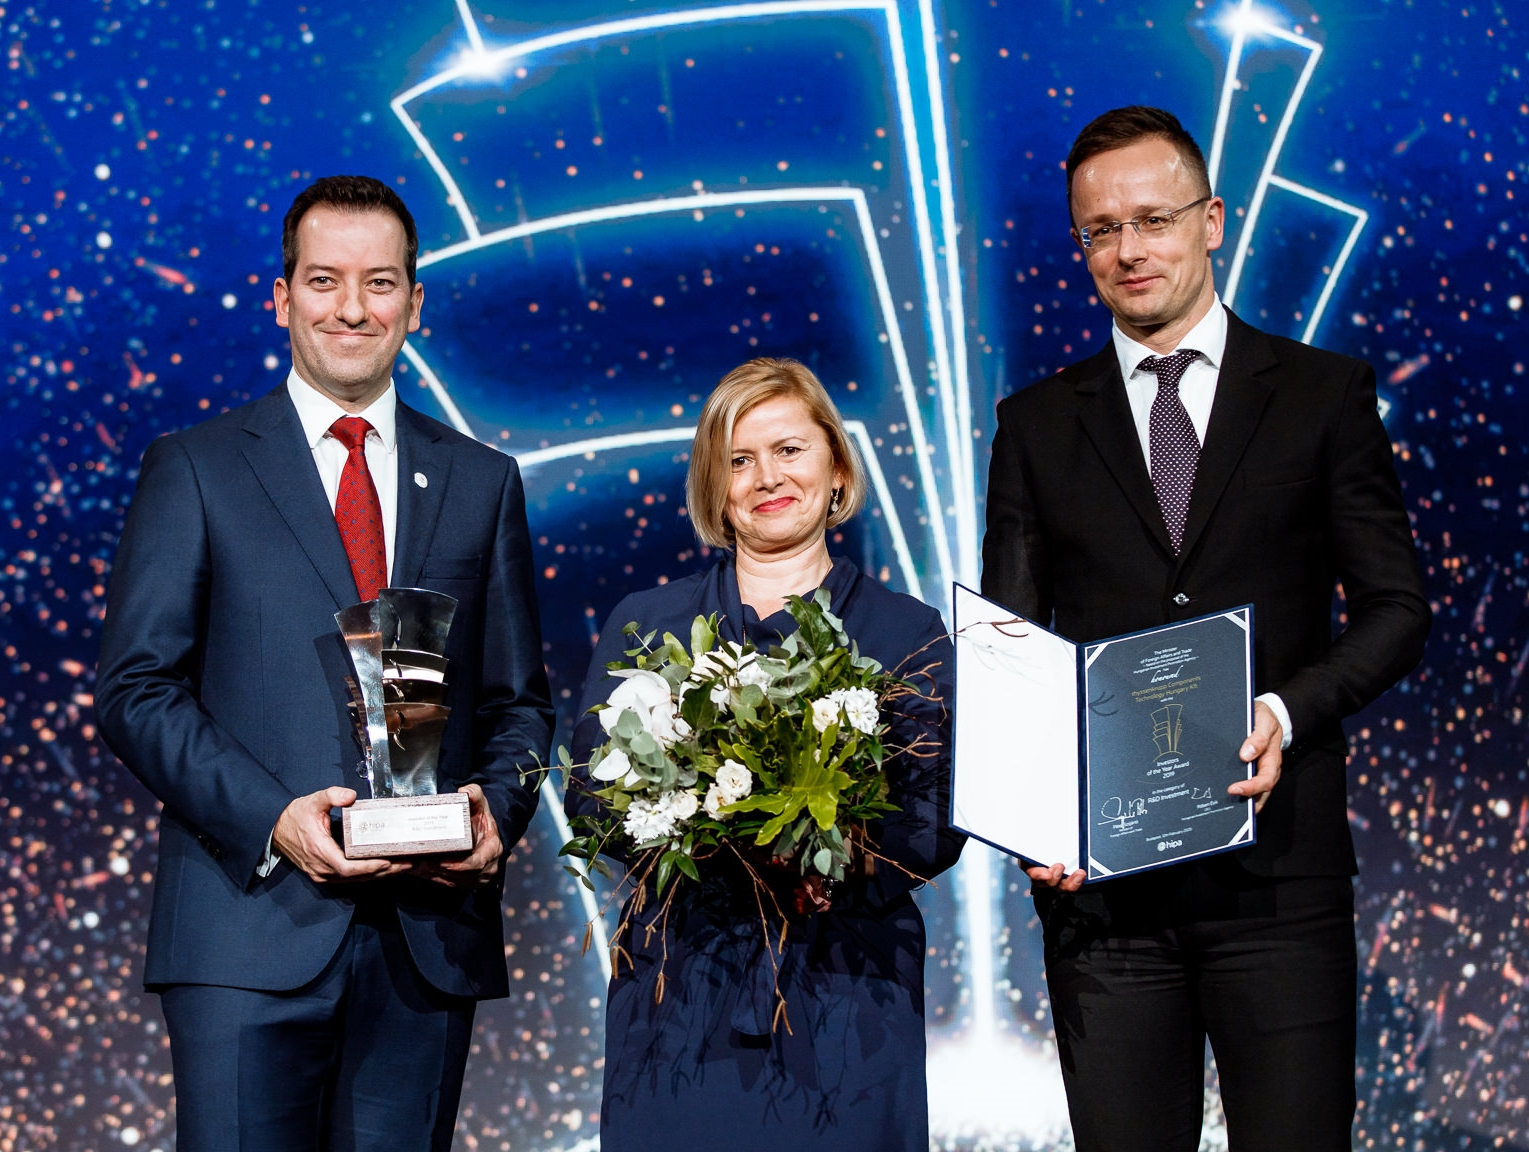 'Research and Development Investment of the Year' award for thyssenkrupp at HIPA's 'Investors of the Year 2019' gala event